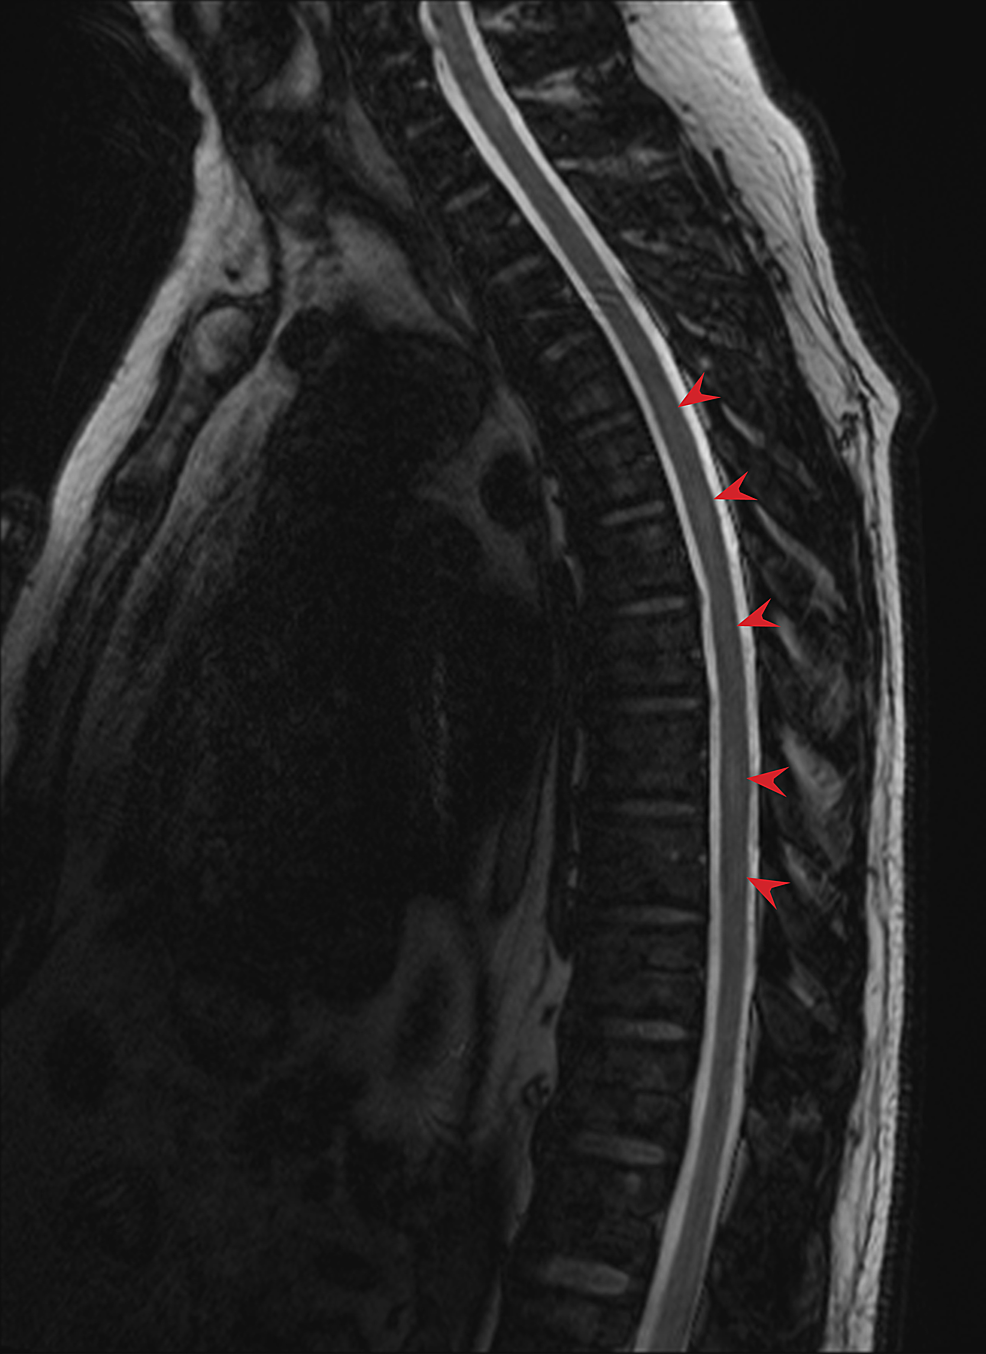 Indeterminate-signal-abnormality-at-multiple-levels-(arrows)-of-the-thoracic-and-lumbar-spine-on-T2-weighted,-Dixon-water-fat-opposed-MRI.-